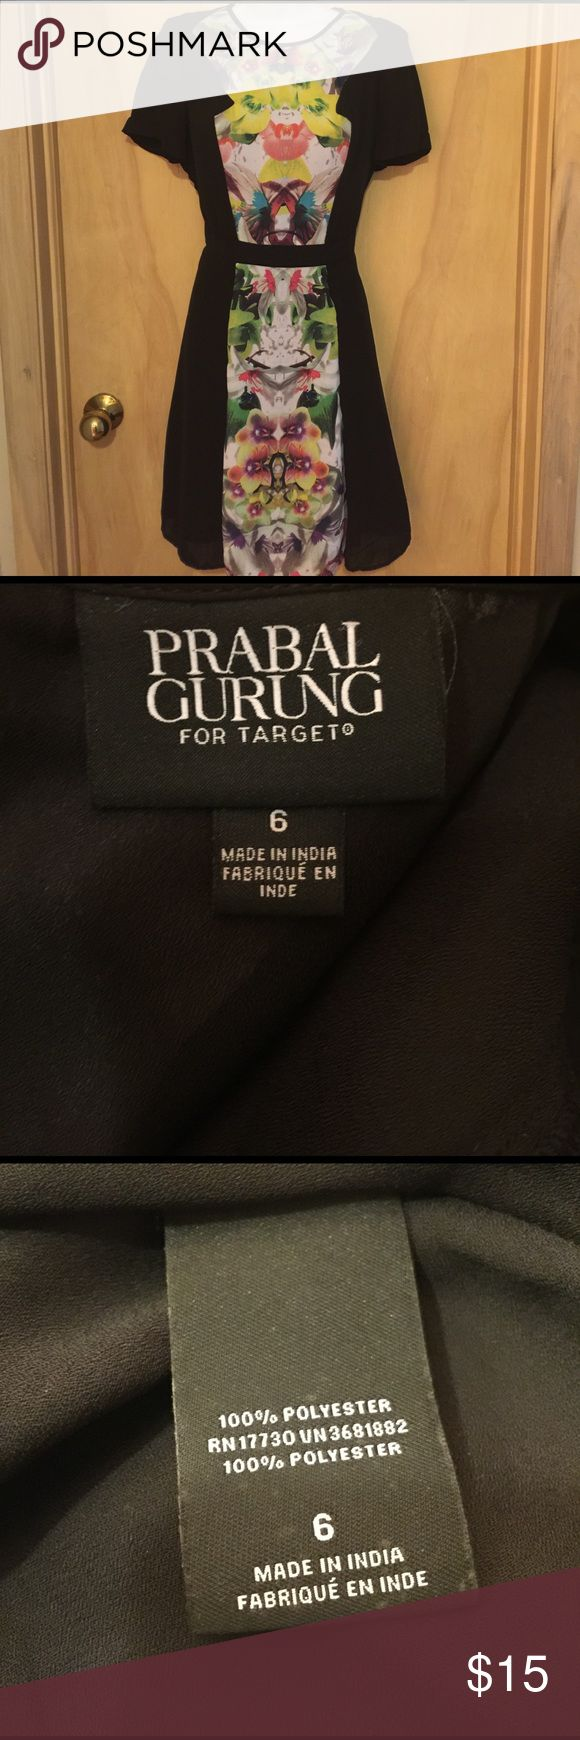 Prabal Gurung Dress sz 6 Prabal Gurung for Target sz 6 dress. Main part of dress is black with a colorful flower design down the middle. The last picture shows one loose thread on back of dress which can be fixed. Prabal Gurung for Target Dresses